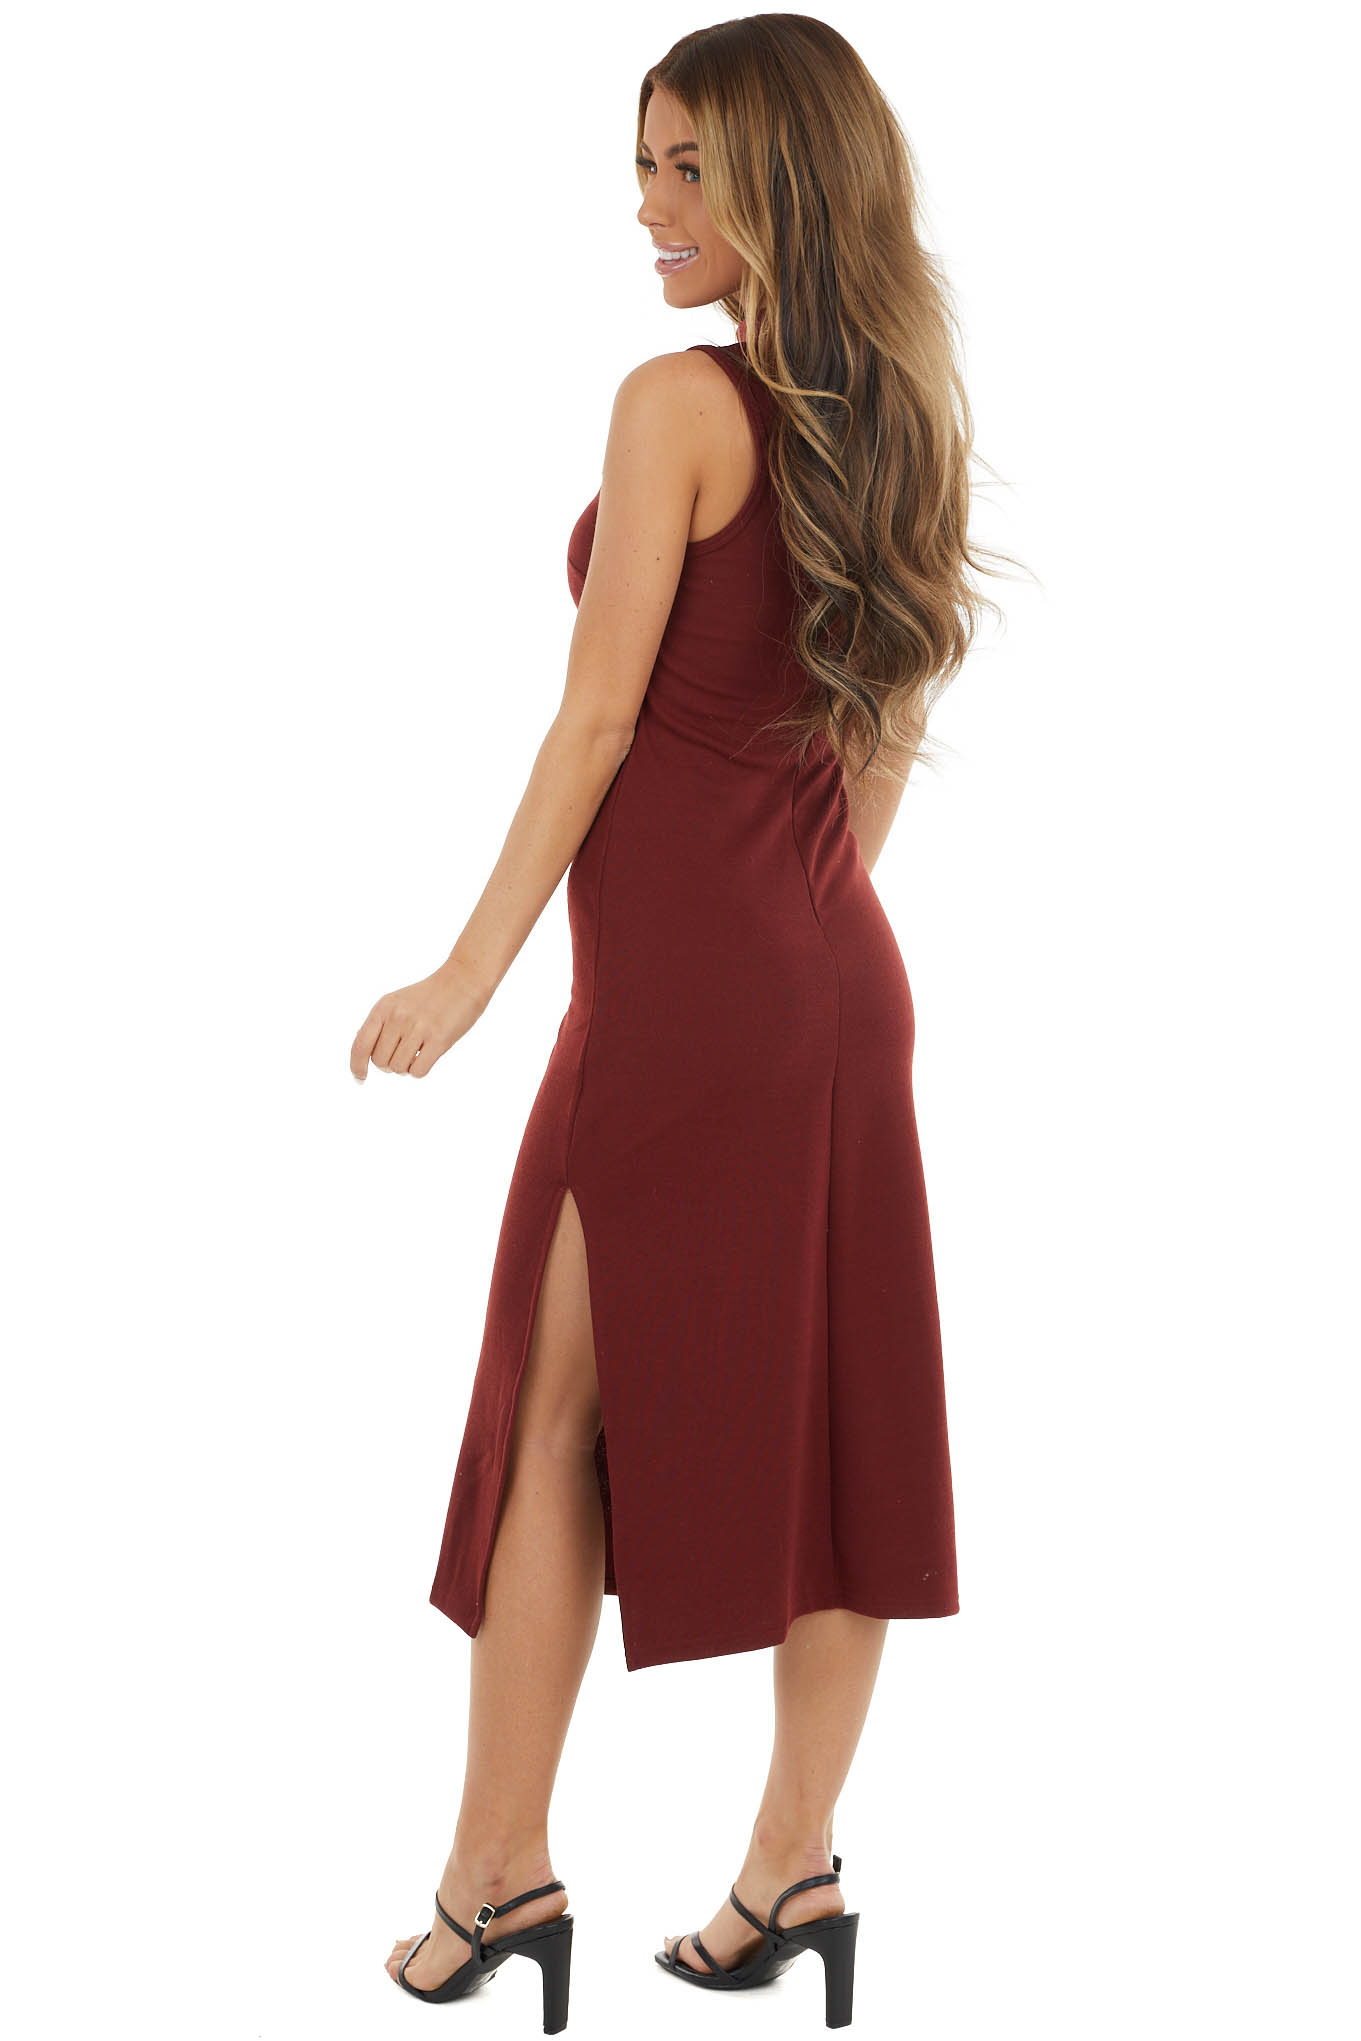 Mahogany Sleeveless Midi Dress with Side Slits and Mock Neck